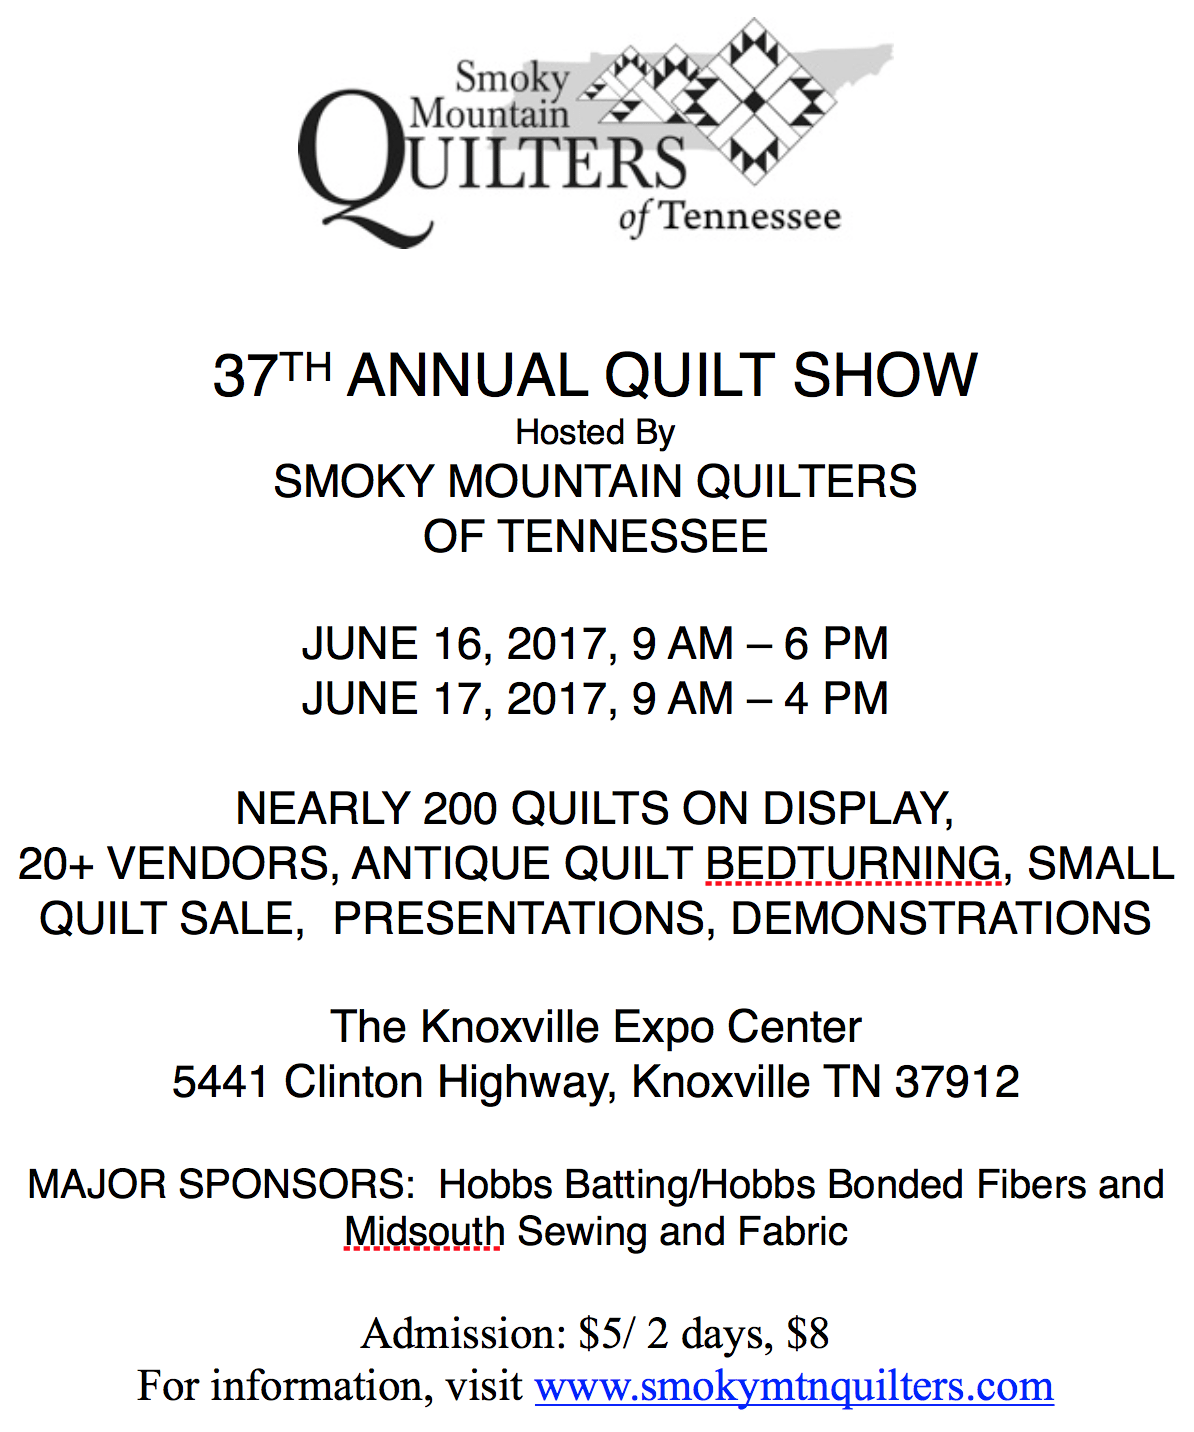 Smoky Mountain Quilt Show 2017 | Knoxville Expo Center : smoky mountain quilt show - Adamdwight.com